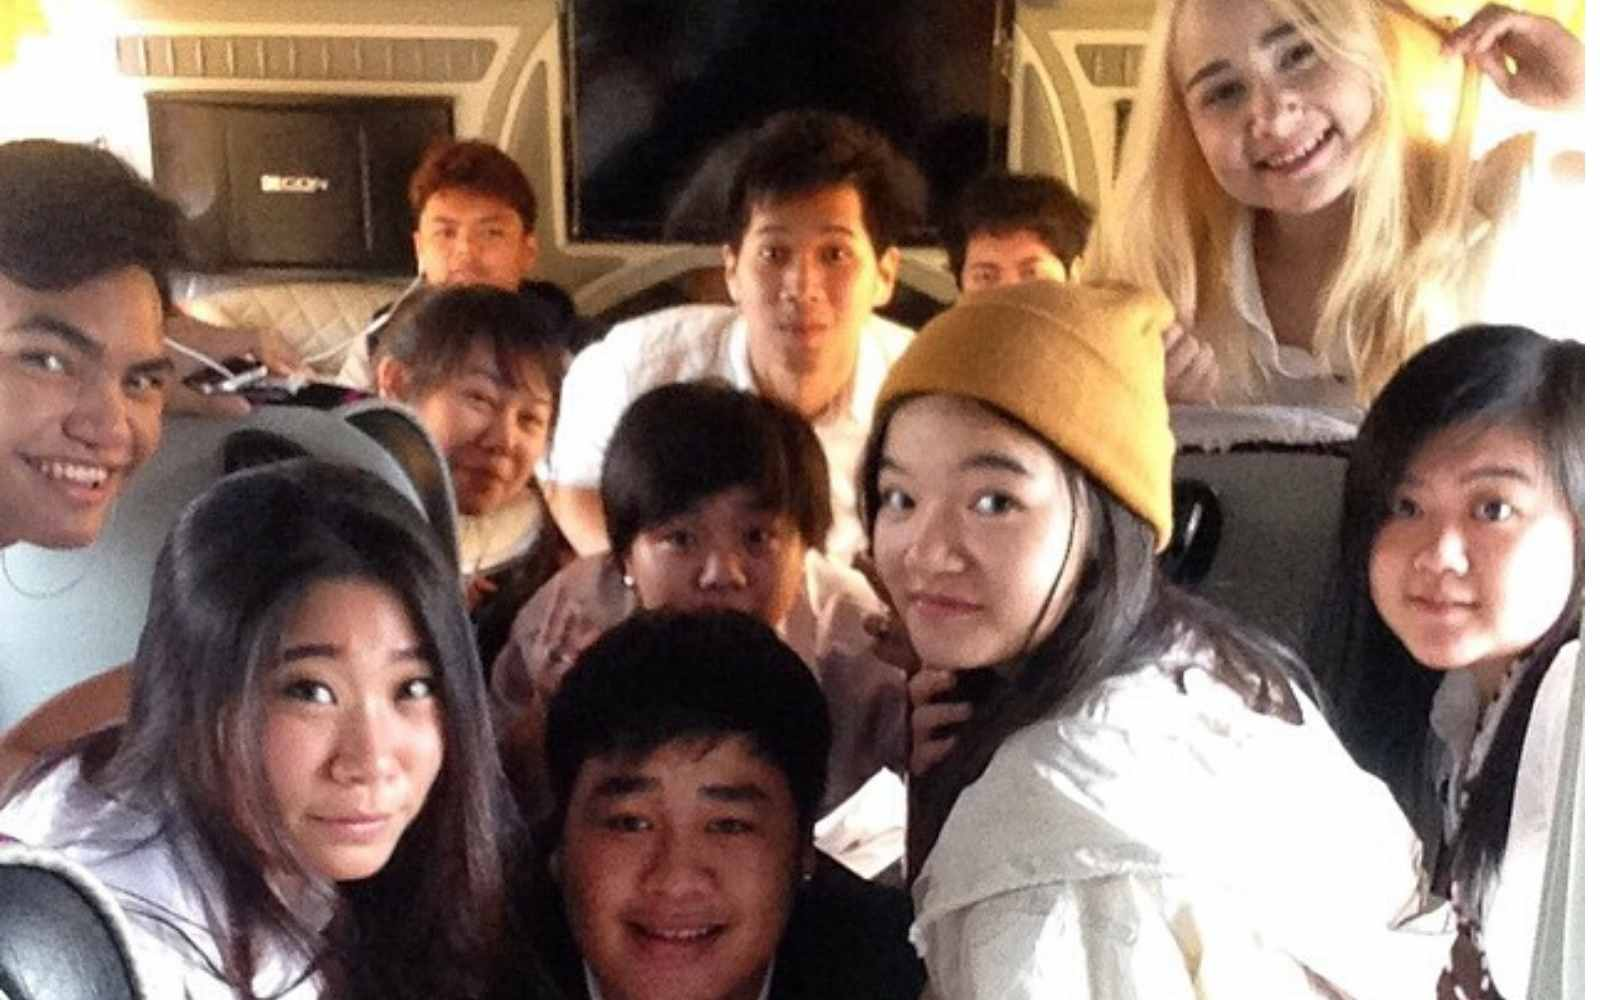 Thai university students on a bus. Difference between Thai culture and America.